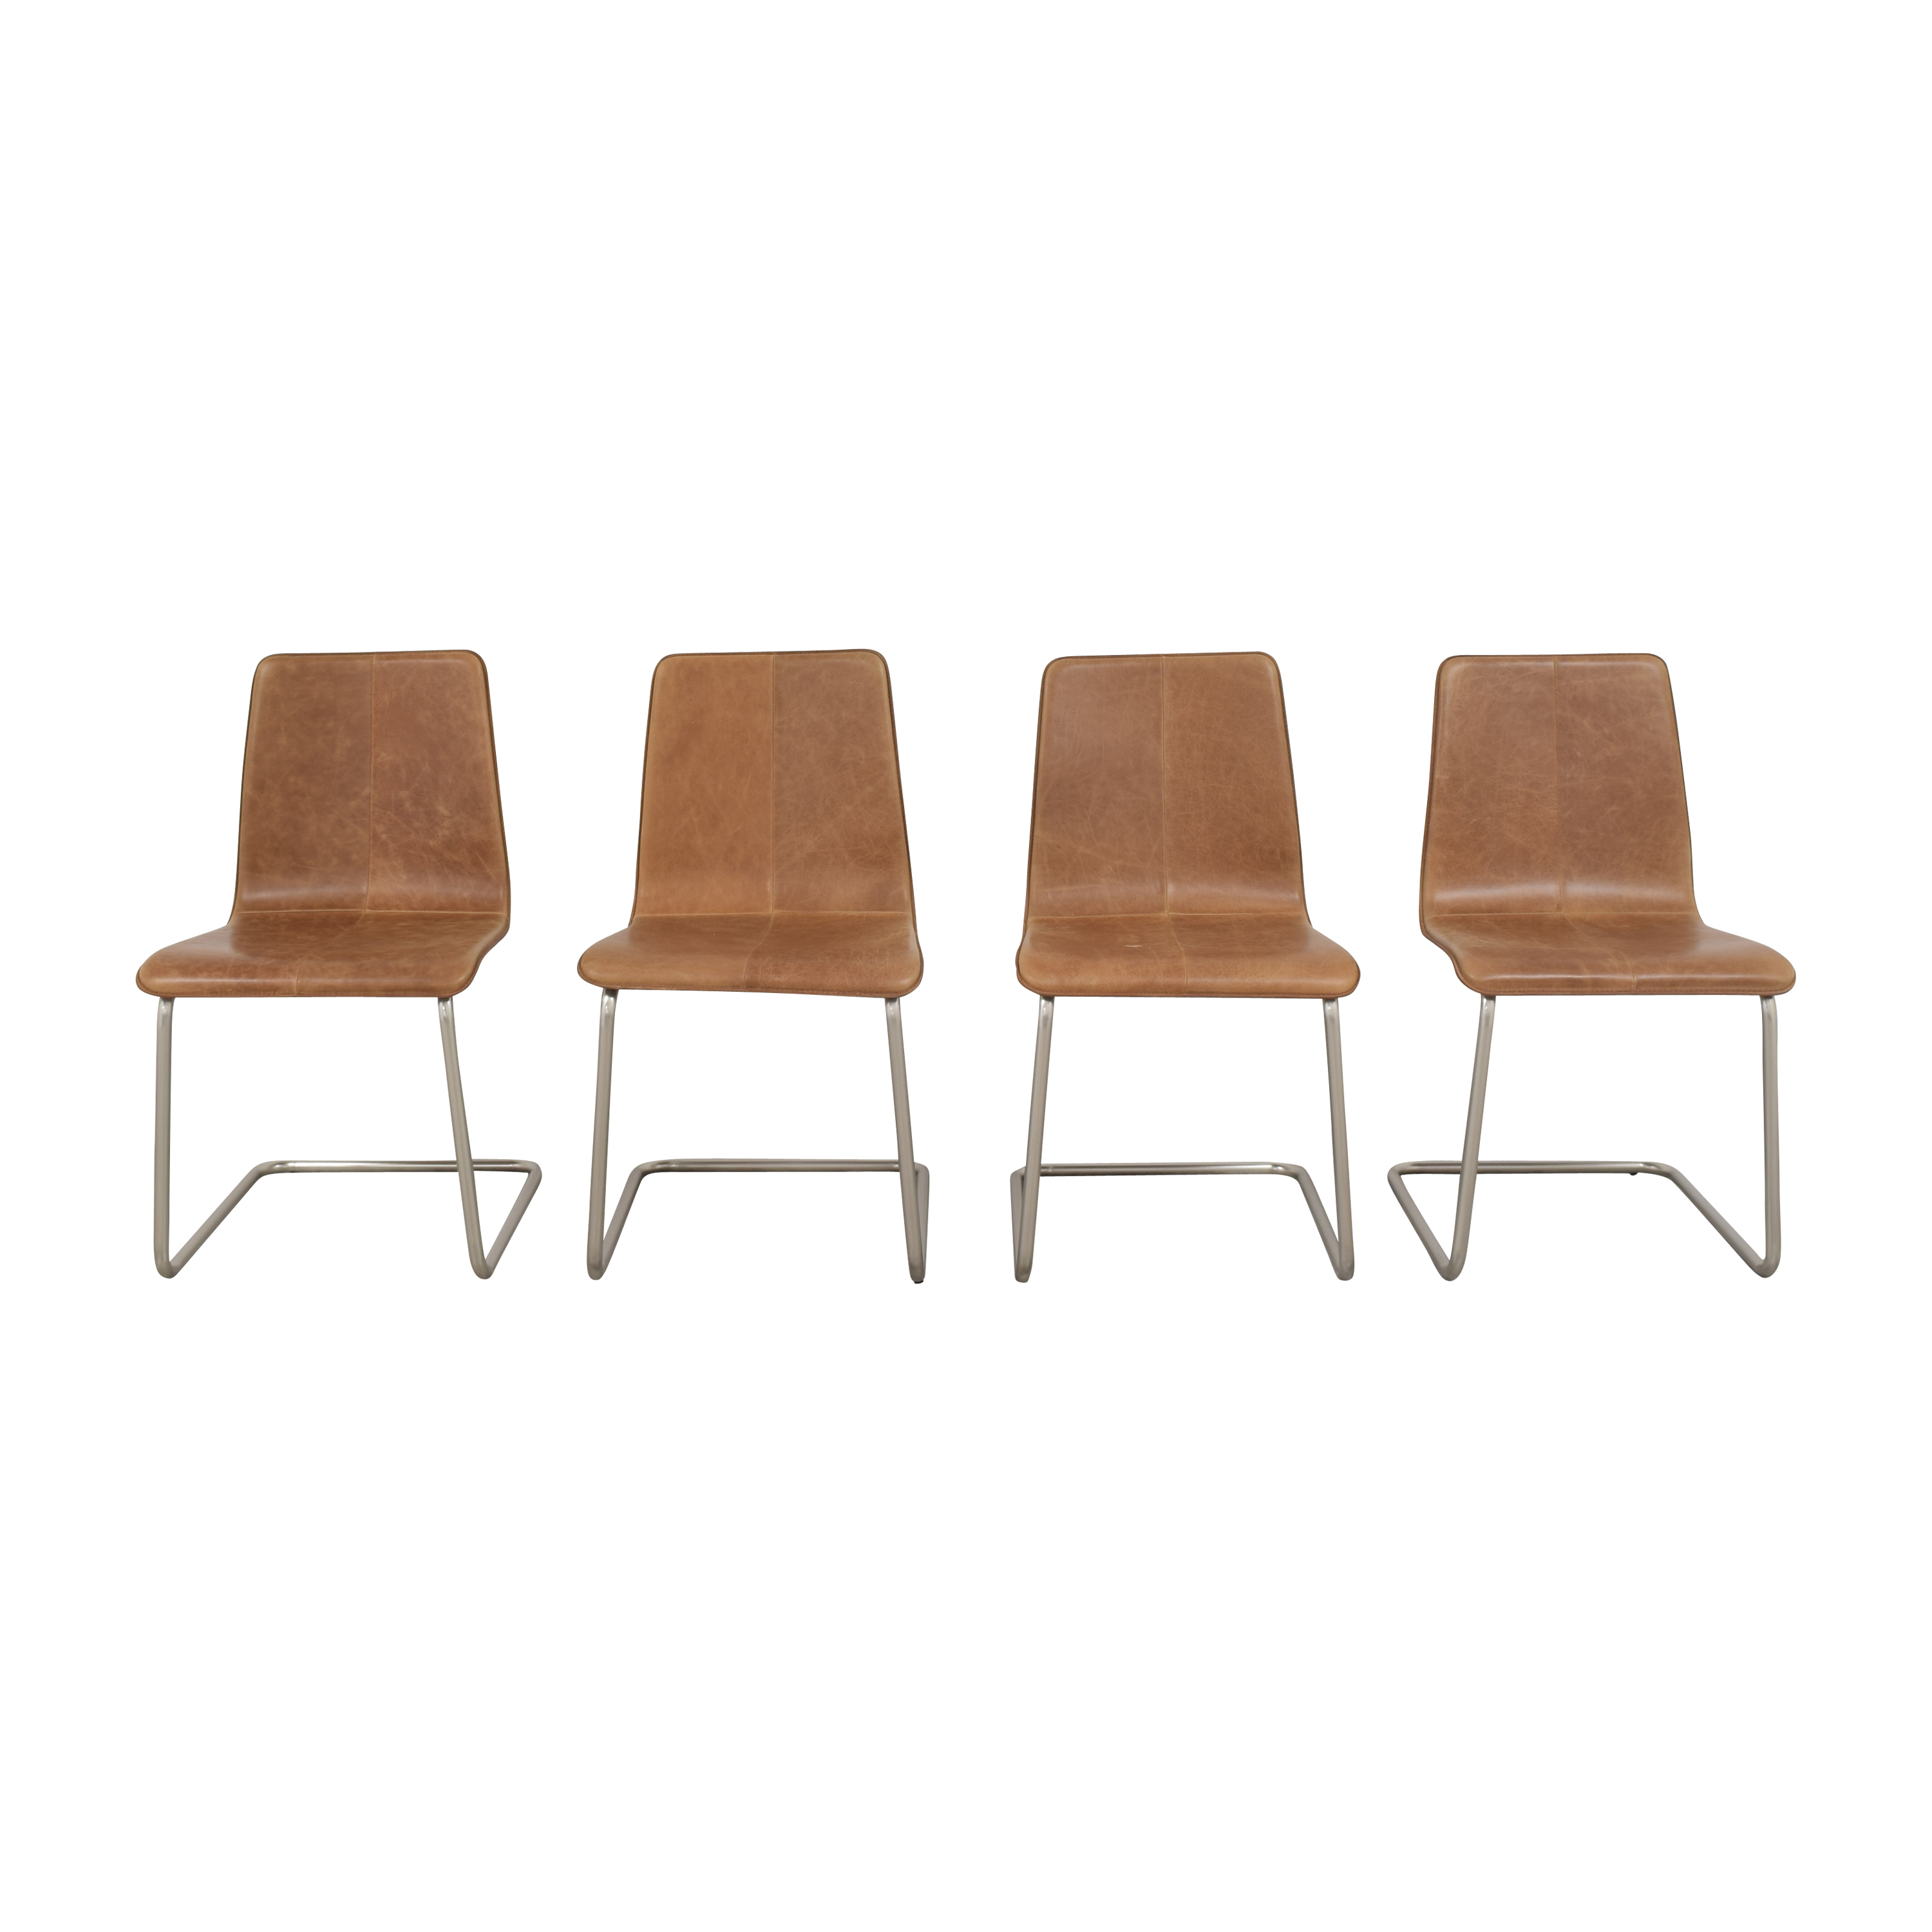 CB2 CB2 Pony Dining Chairs Chairs